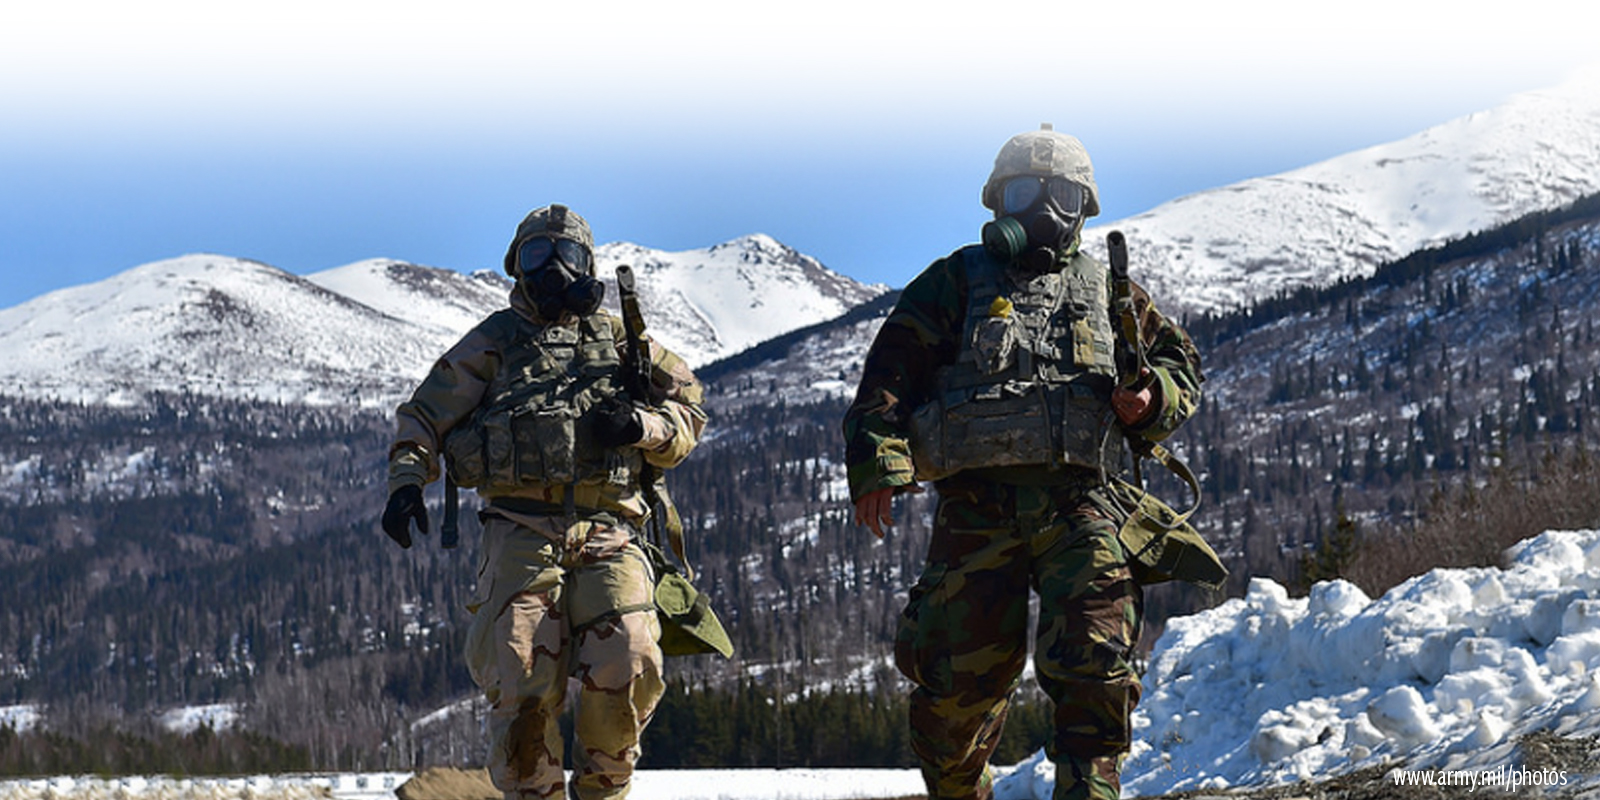 Supporting Warfighter prevention, response to and recovery from CBRN threats